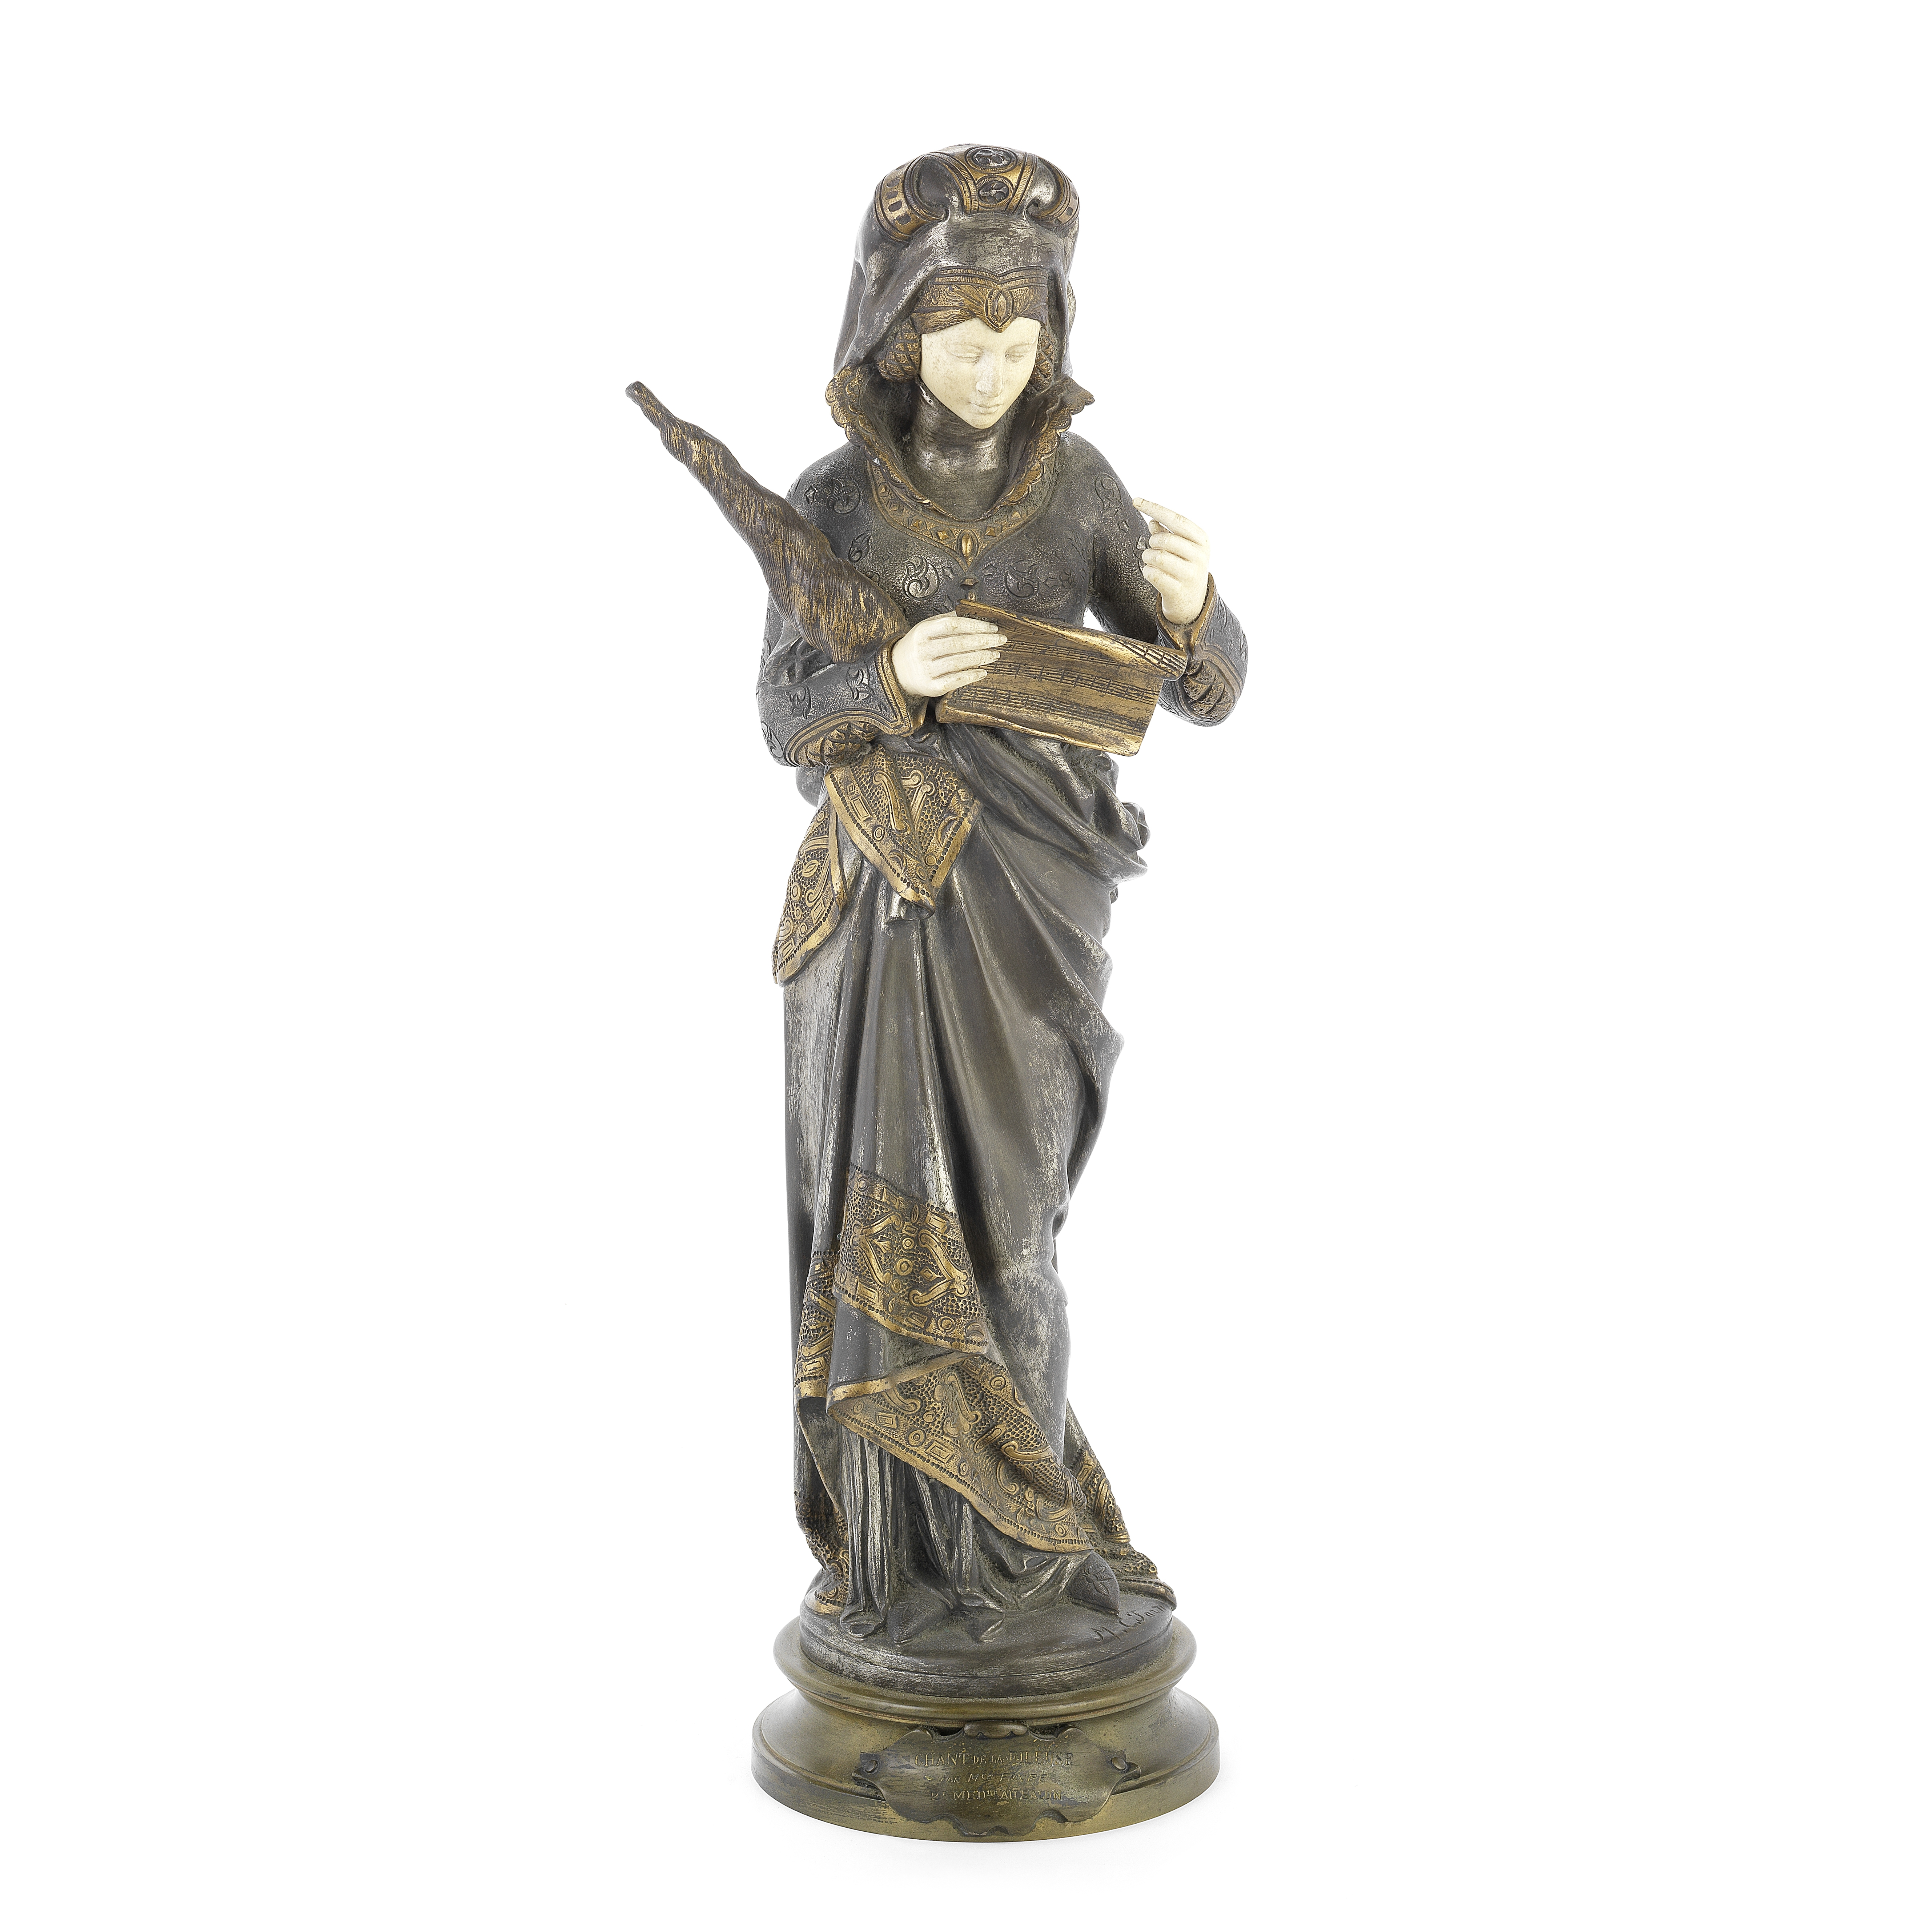 After Maurice Constant Favre (French, 1875-1919): A late 19th / early 20th century patinated, sil...